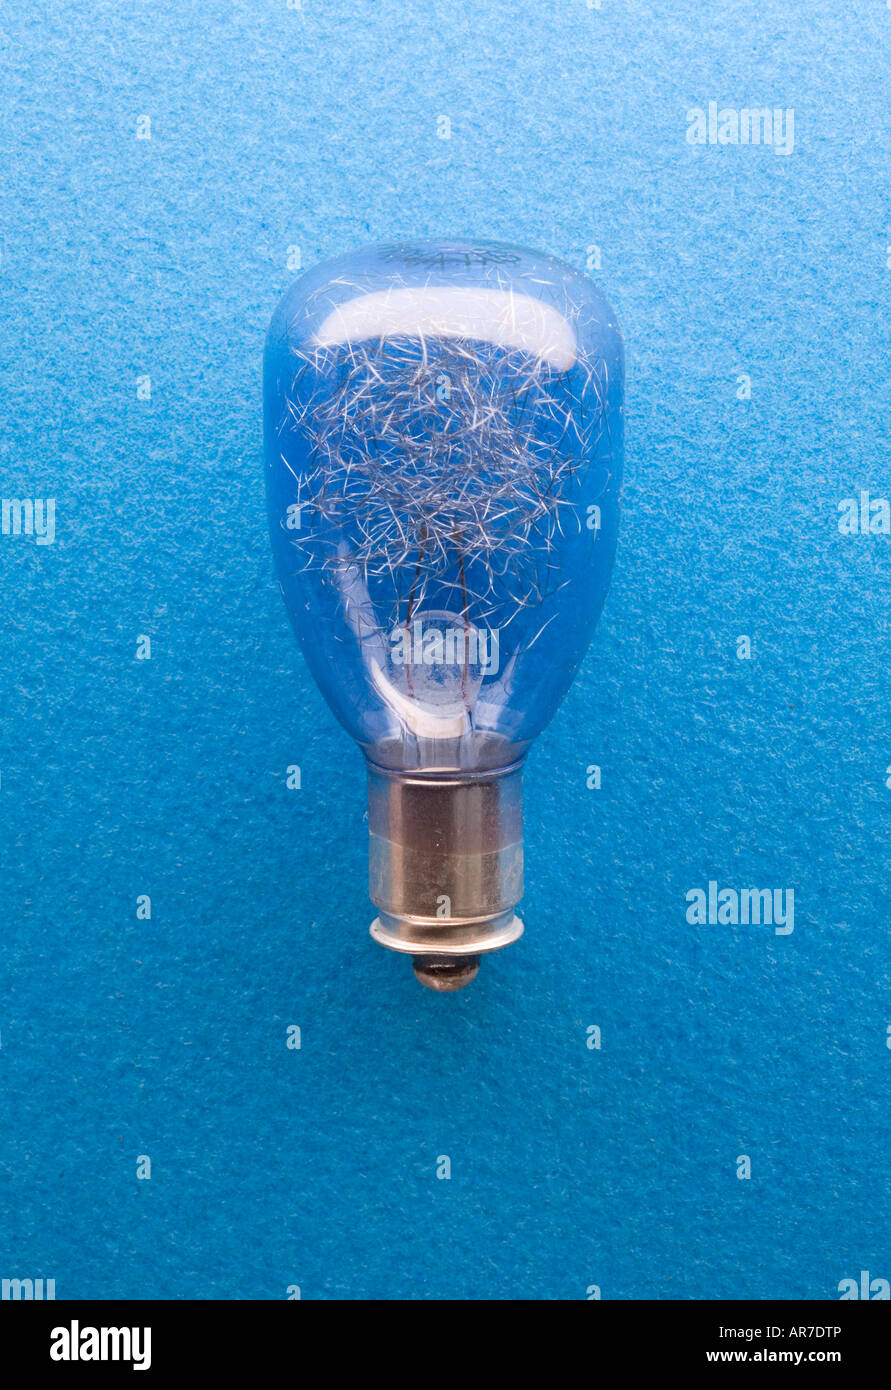 vintage flash bulb before it explodes - Stock Image